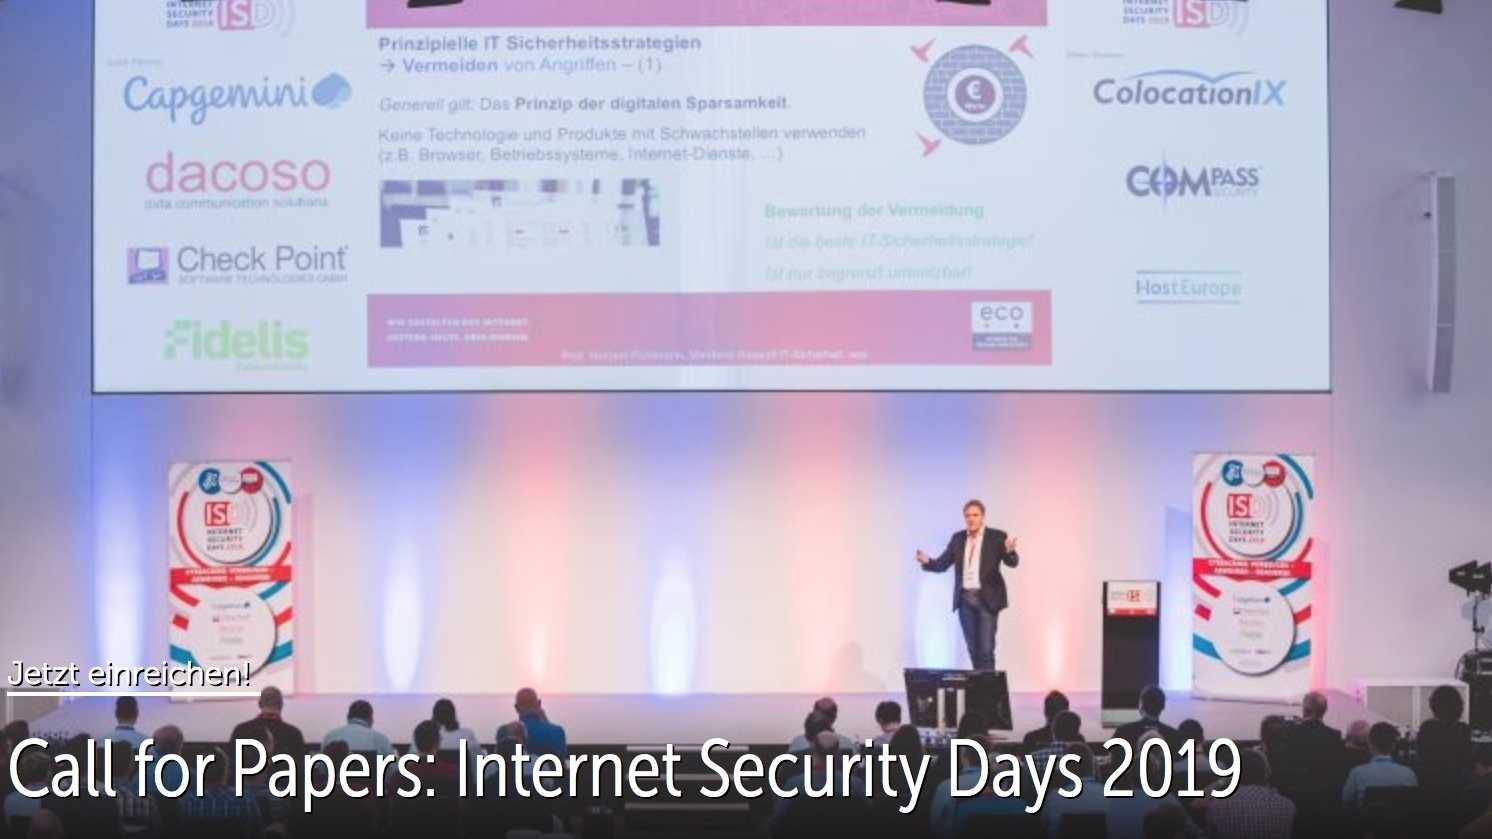 Internet Security Days 2019: Countdown für den Call for Papers läuft